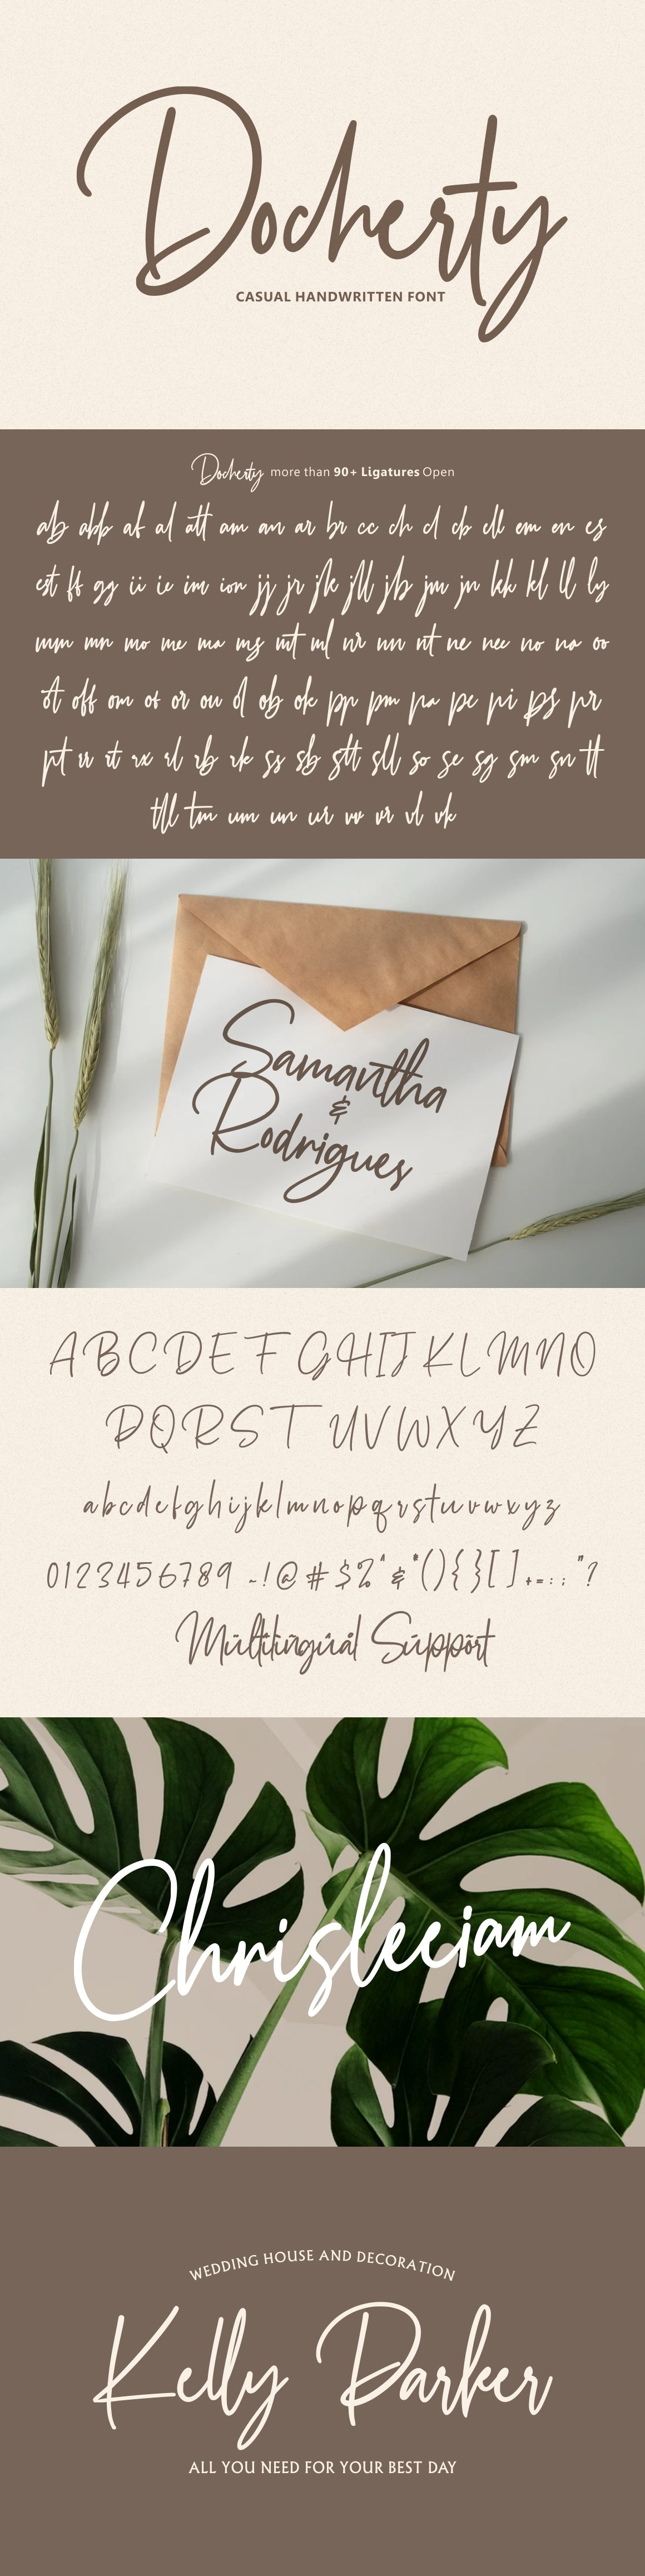 Docherty - Casual Signature Font example image 11